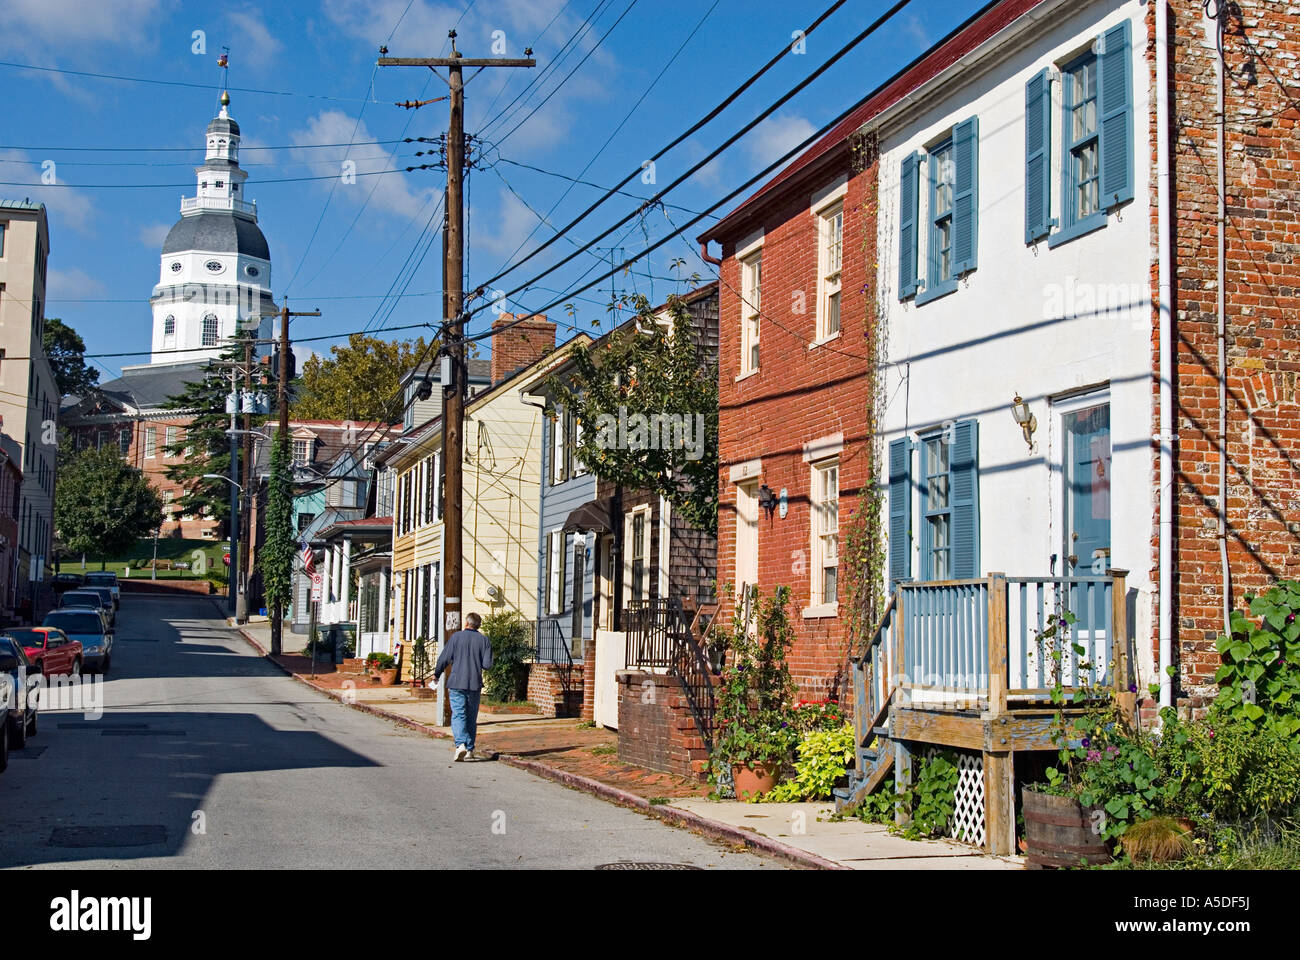 Street scene with row houses and capitol building in for House builders in maryland